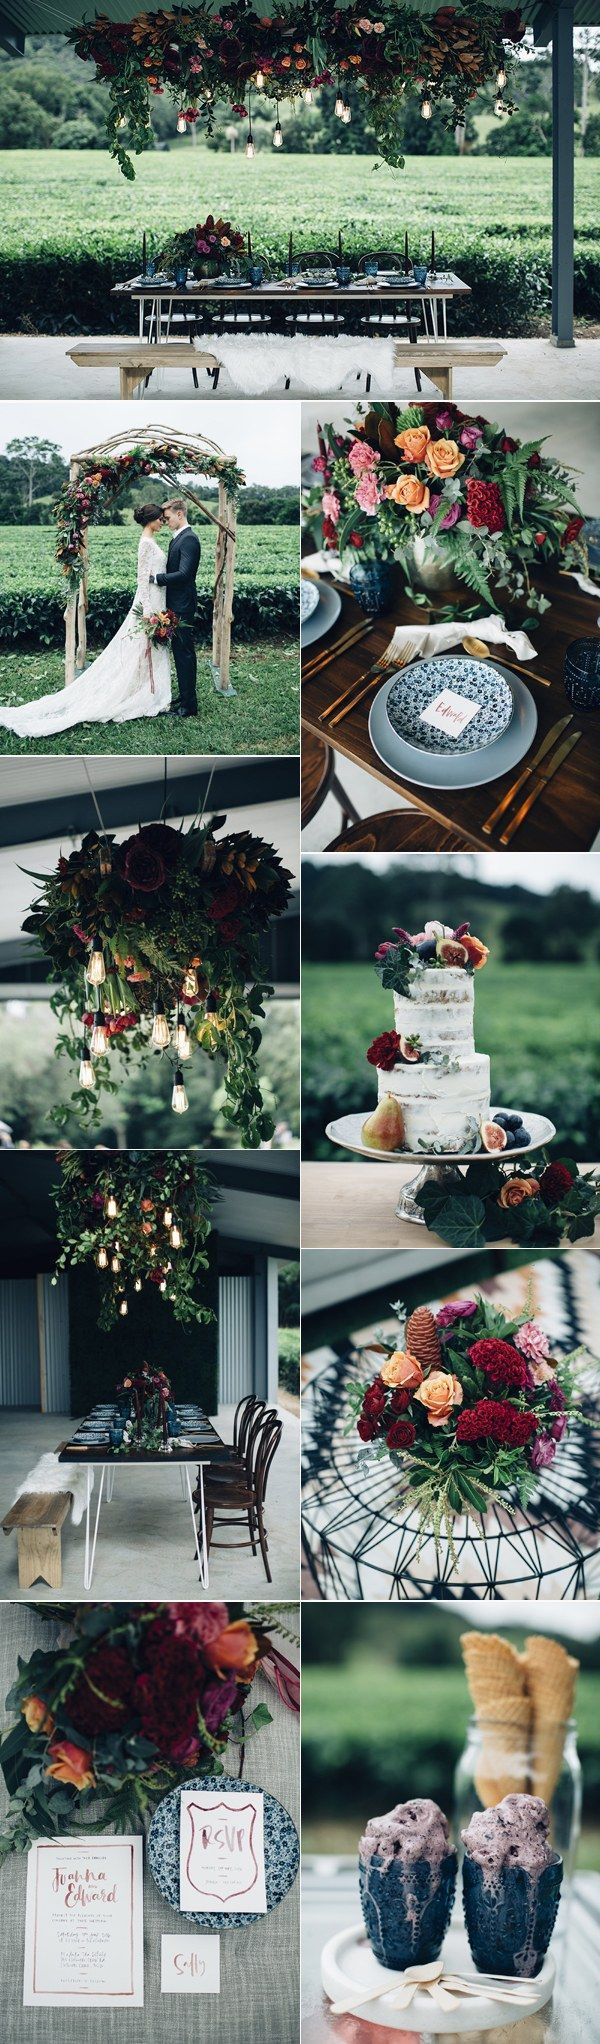 Moody industrial deep red and dark navy wedding ideas / http://www.deerpearlflowers.com/industrial-wedding-theme-ideas/2/